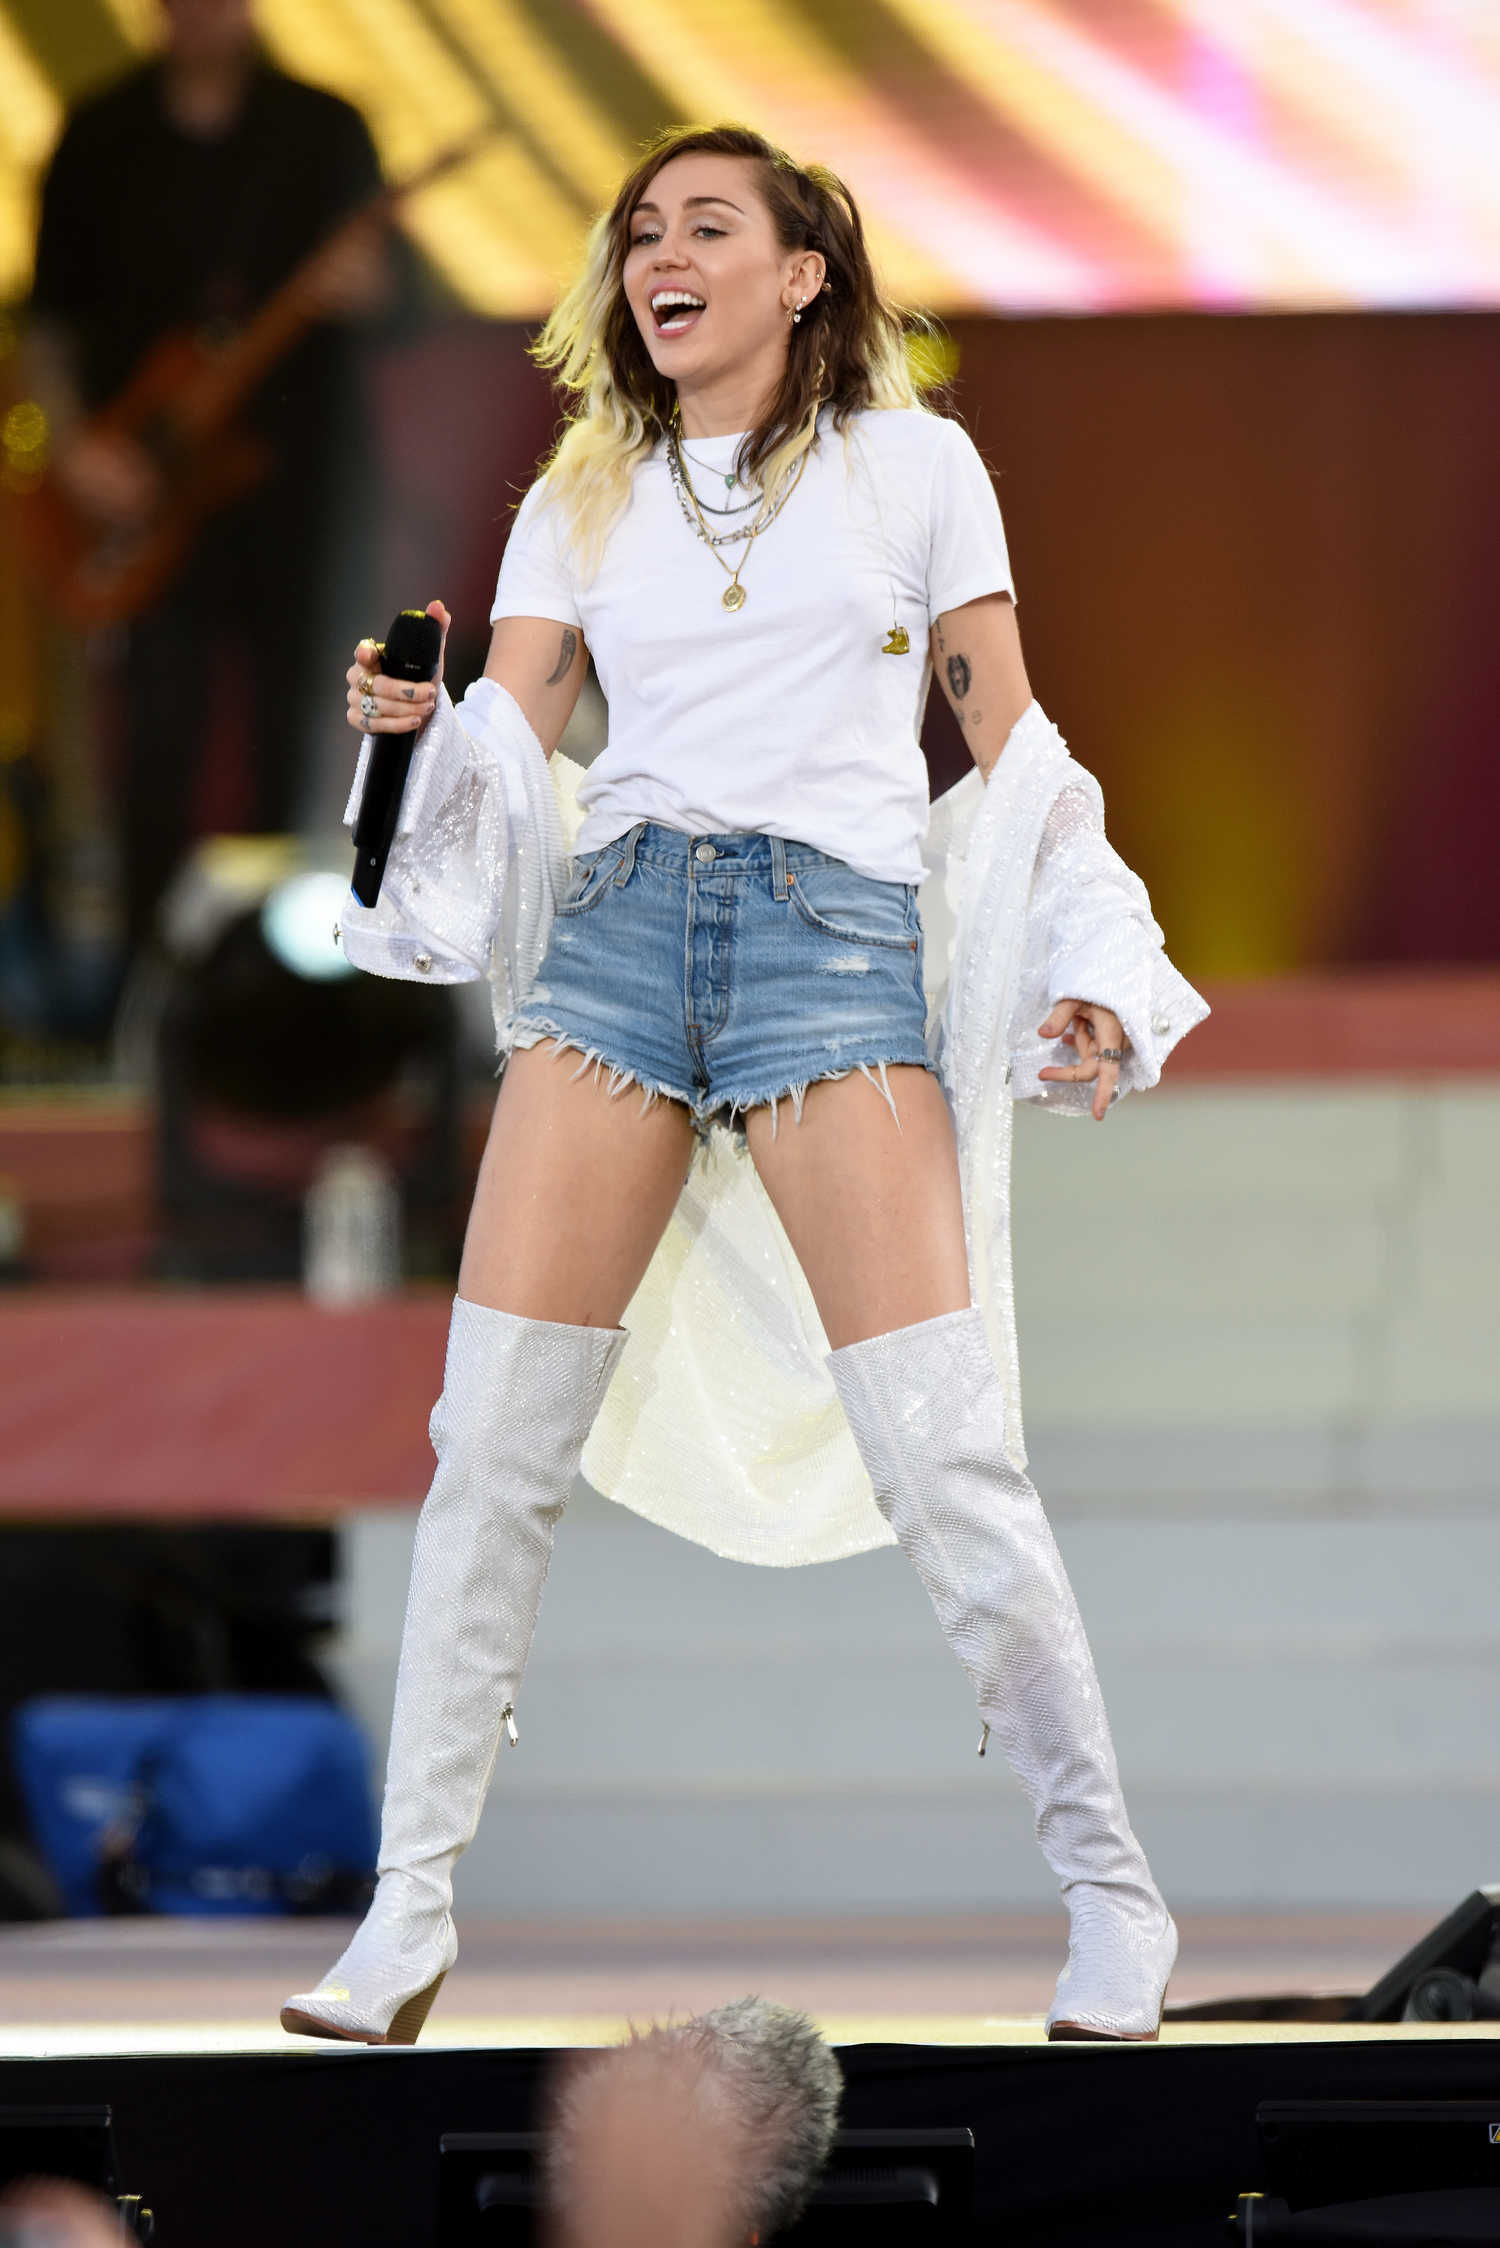 Miley Cyrus Performs at Old Trafford in Manchester – Celeb Donut Milla Jovovich